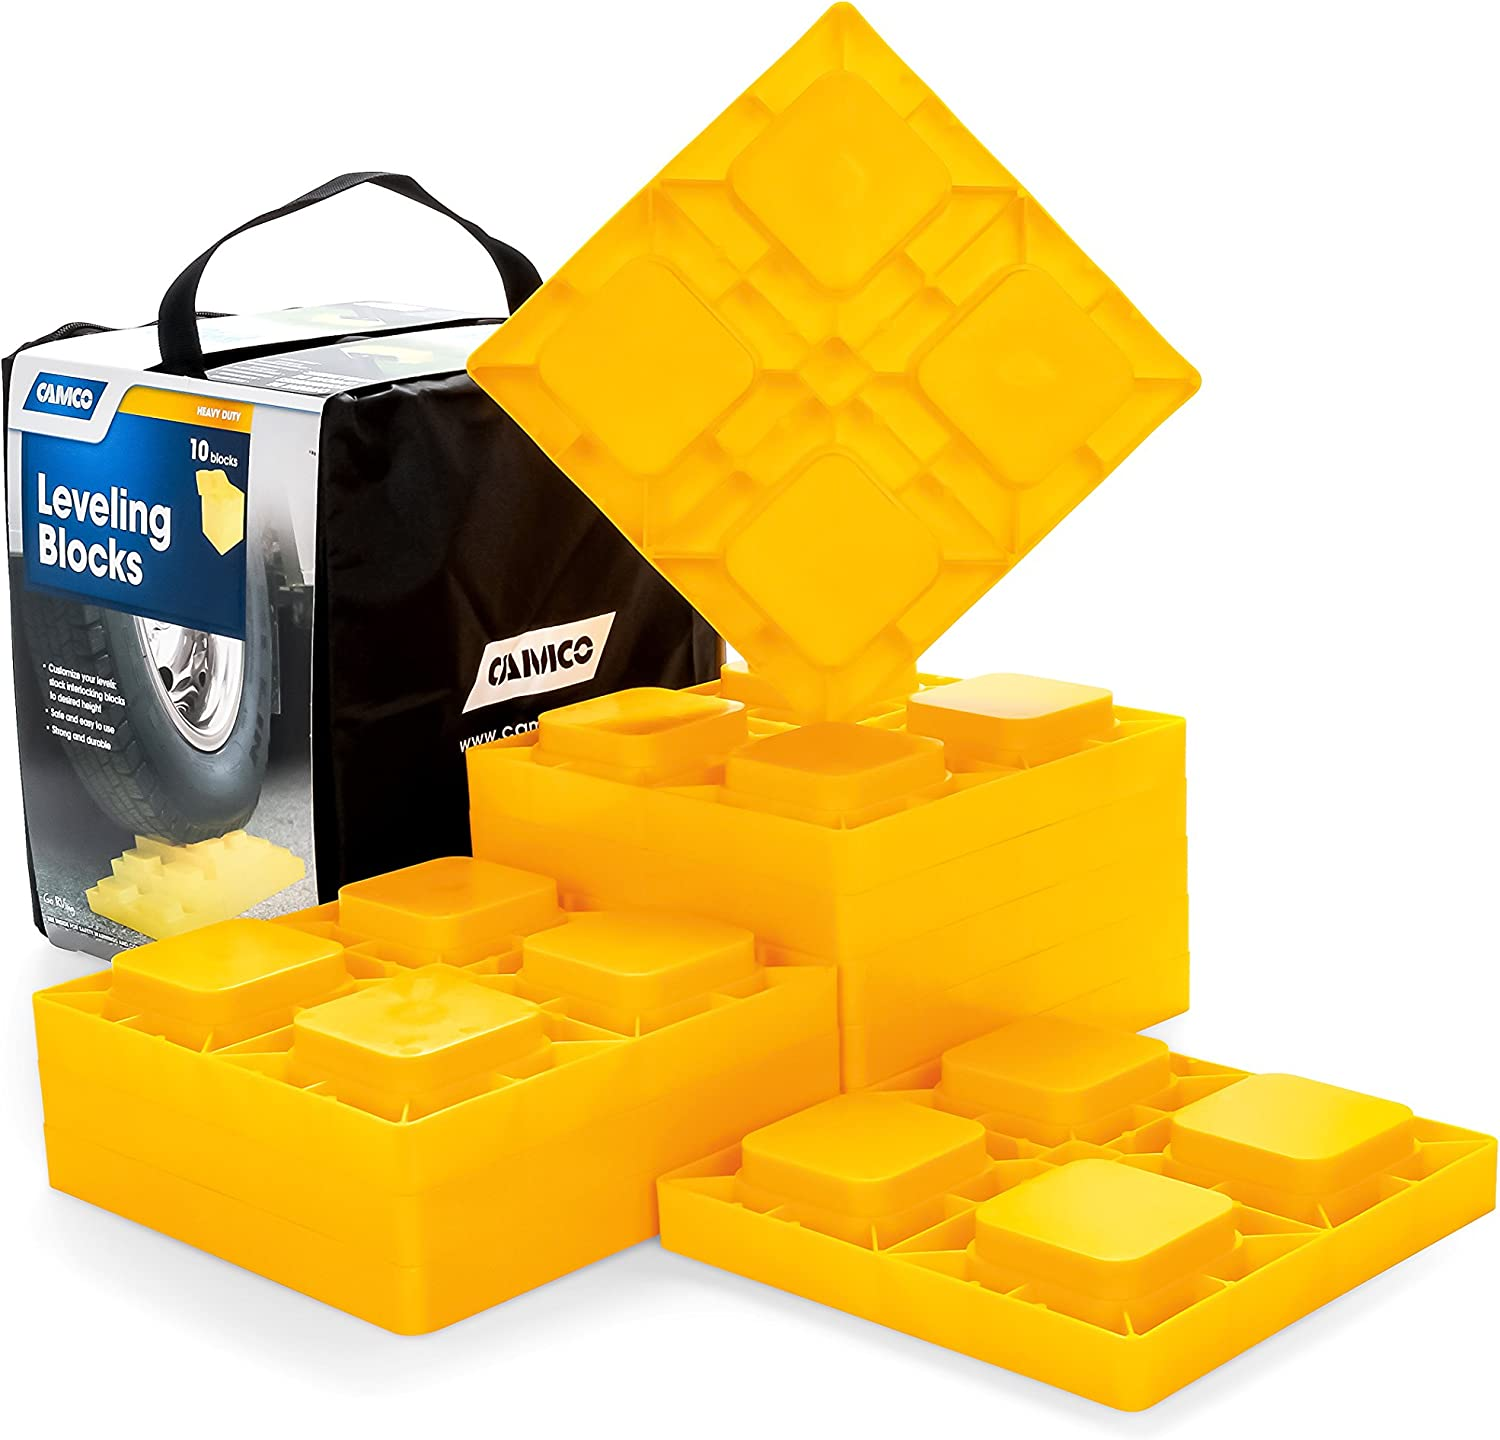 Camco 44510 Heavy Duty Leveling Blocks, Ideal For Leveling Single and Dual Wheels, Hydraulic Jacks, Tongue Jacks and Tandem Axles (10 Pack, Frustration-Free Packaging): Automotive